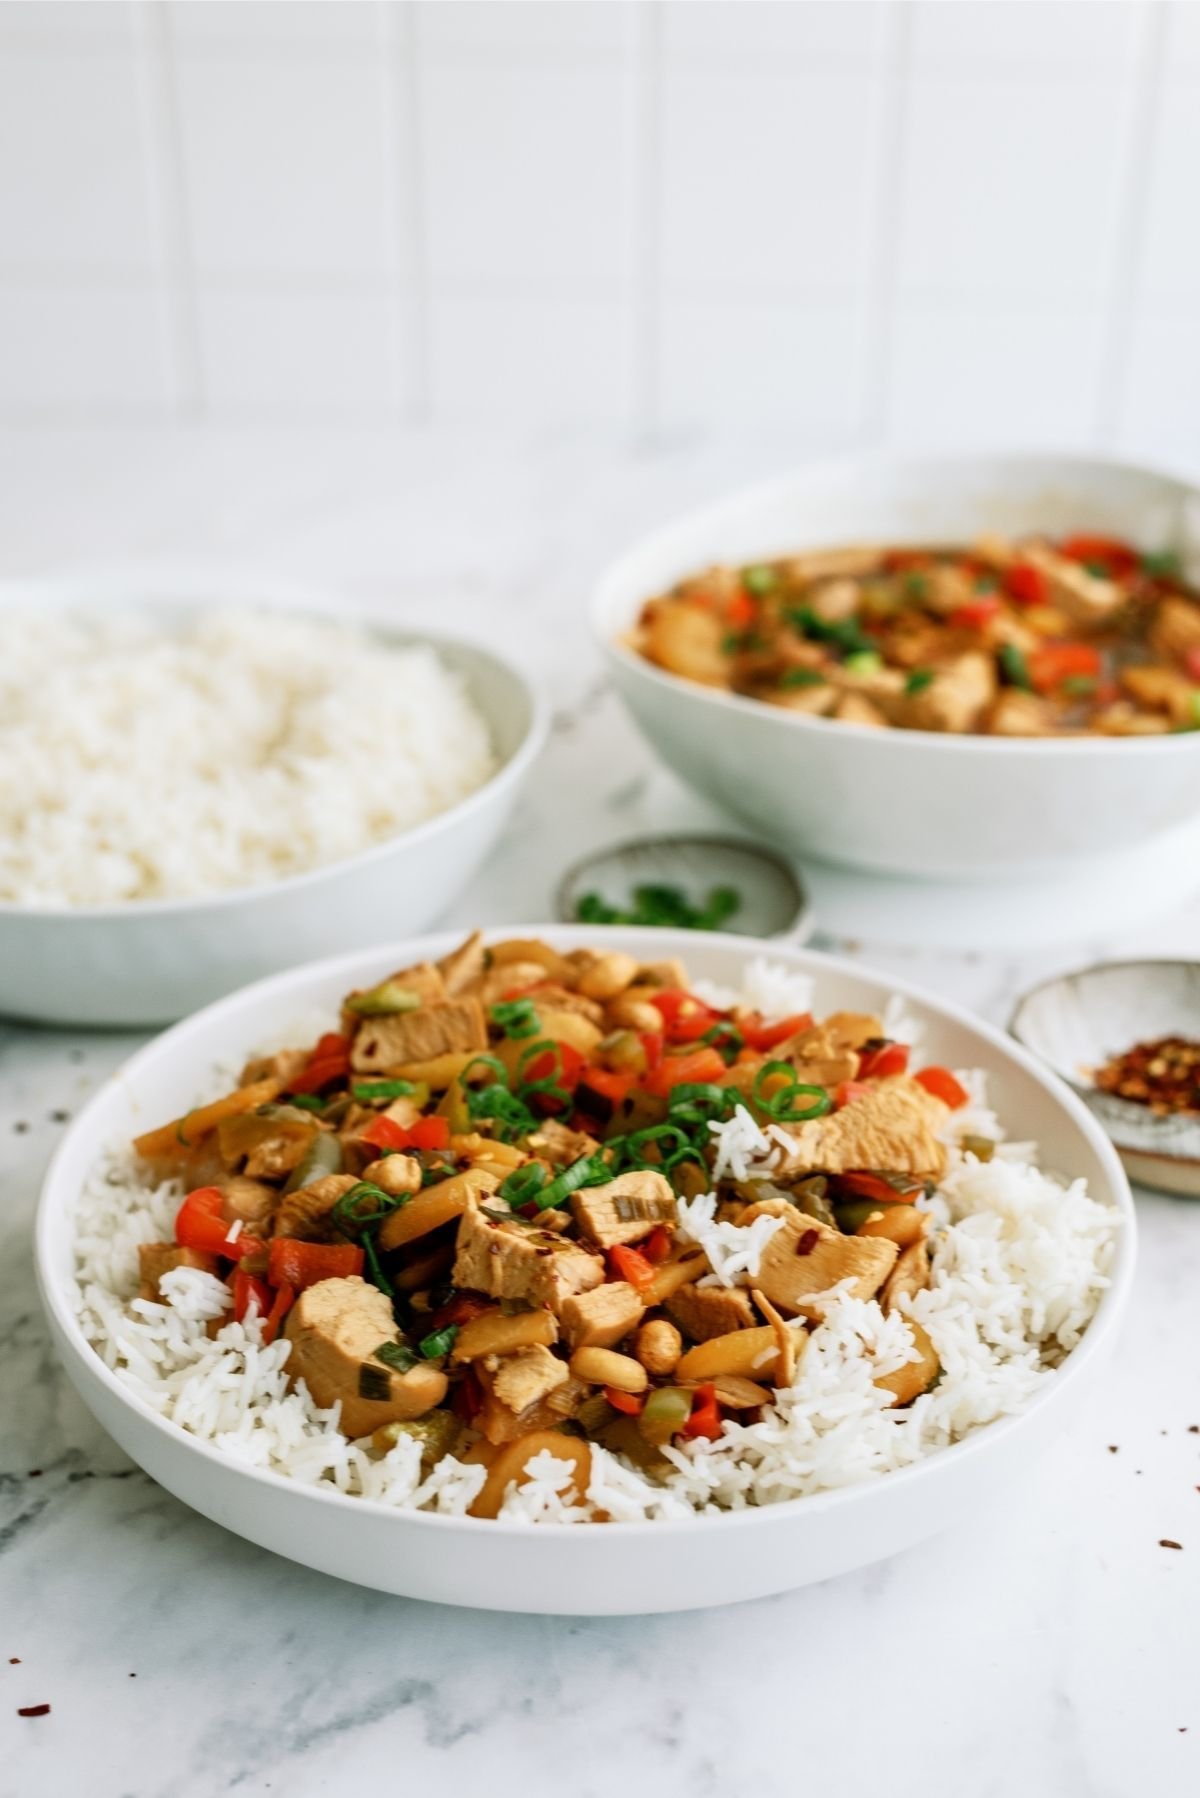 Slow Cooker Kung Pao Chicken in a white bowl served over rice